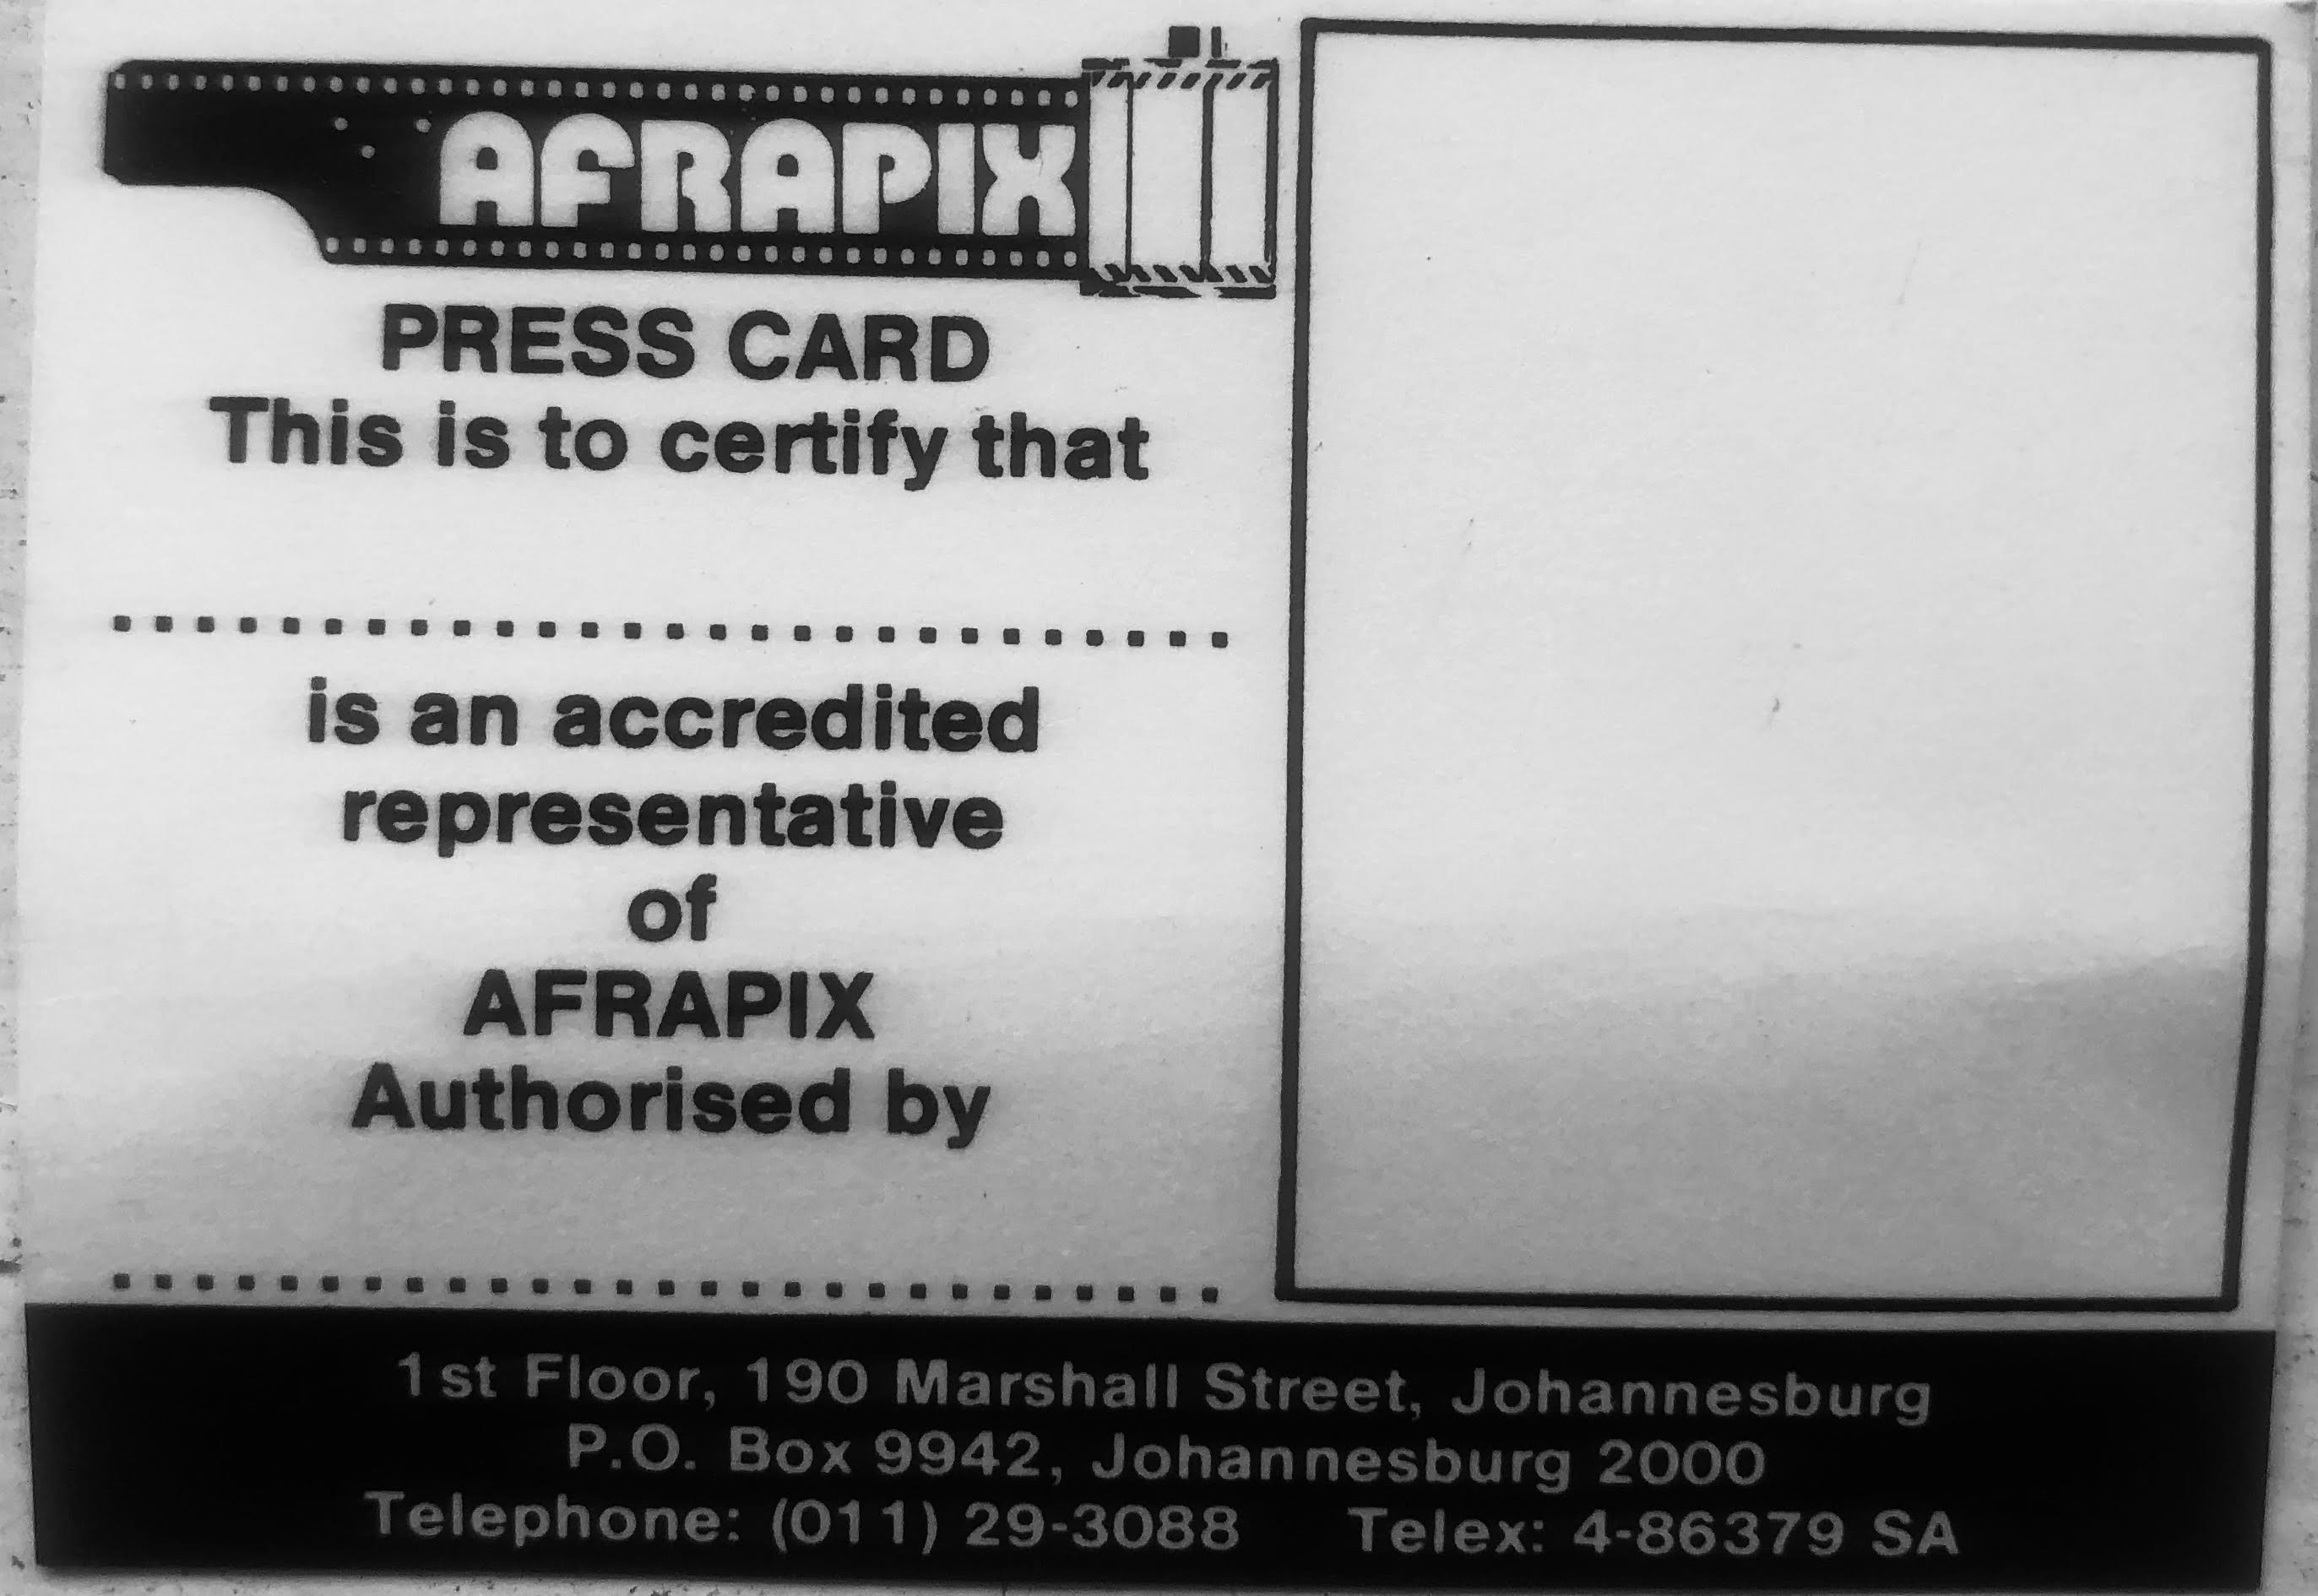 Afrapix Press Card